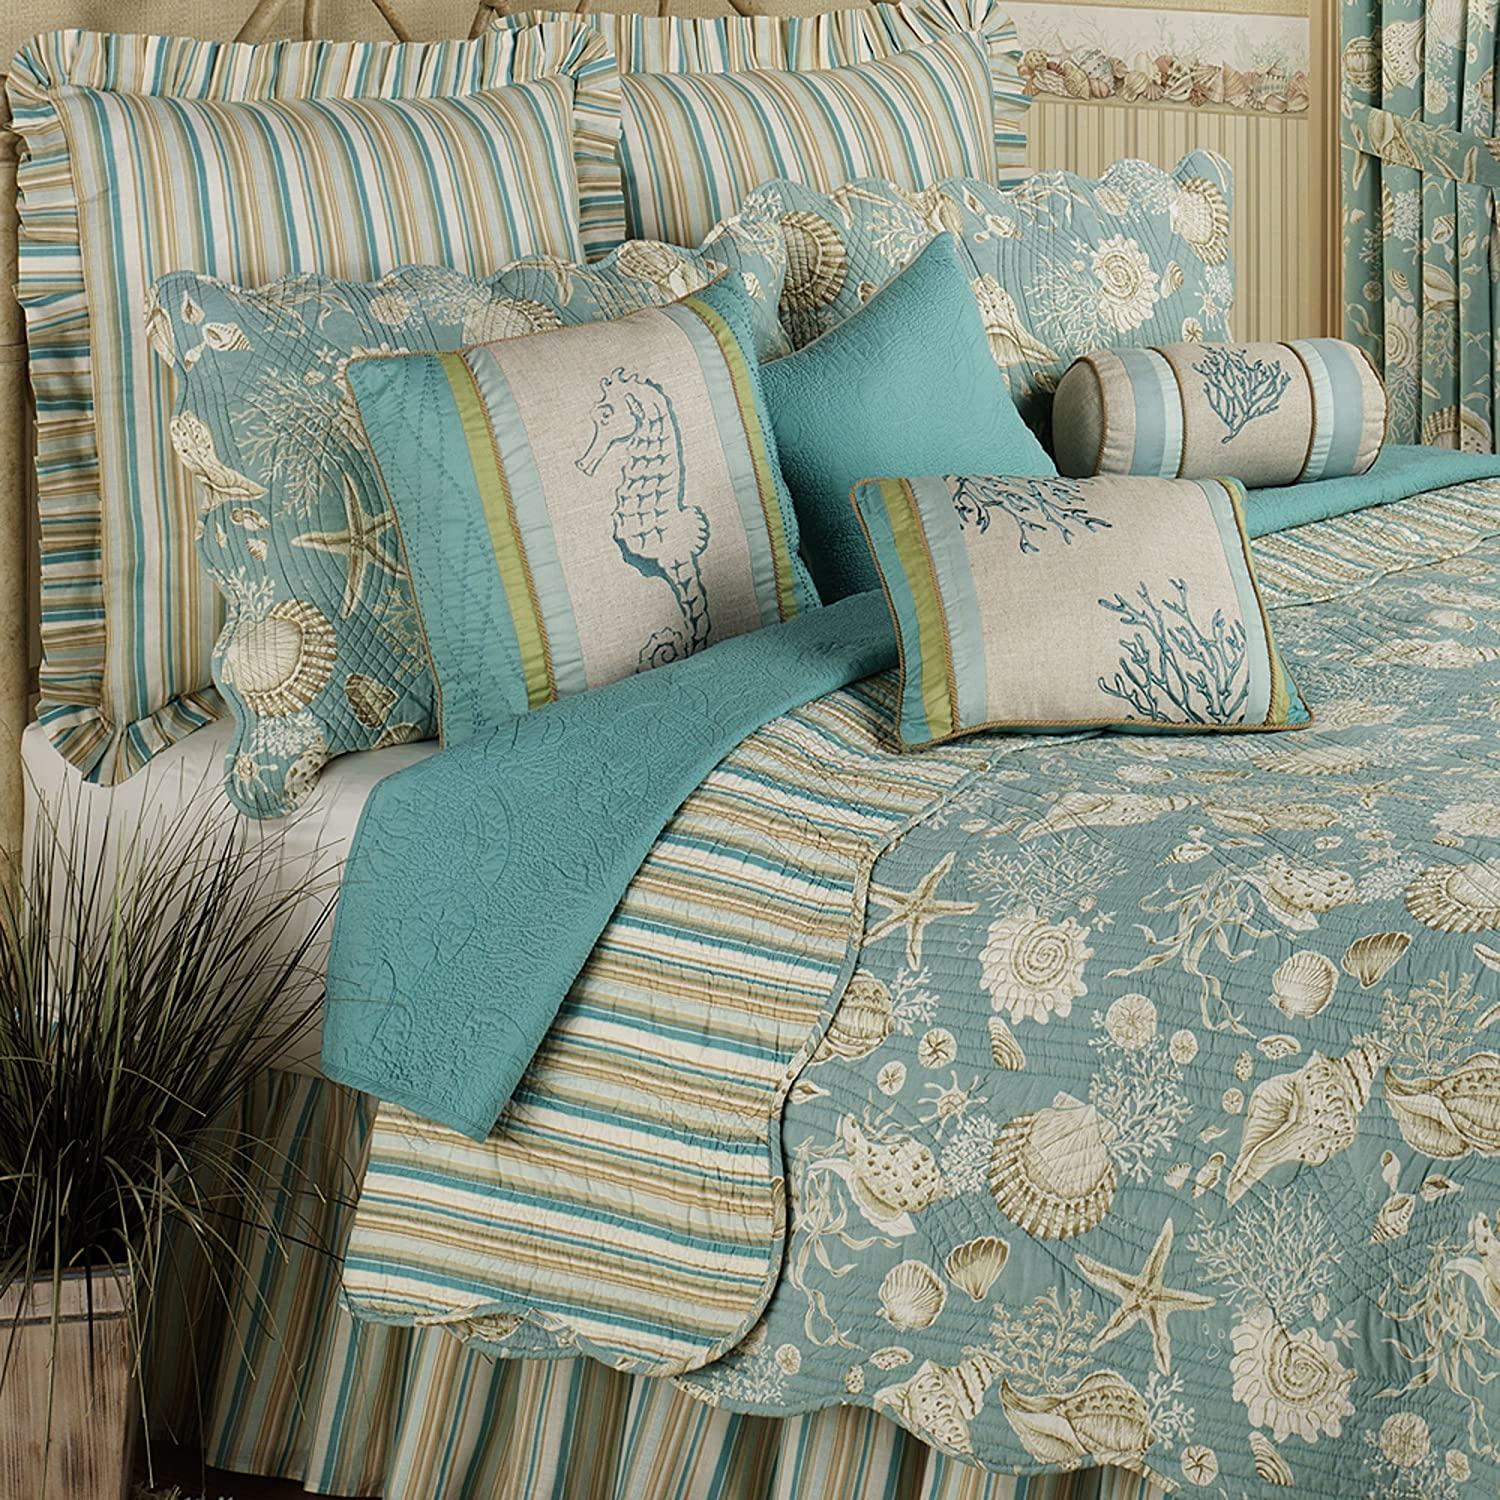 wrap text around image this natural shells quilt bedding